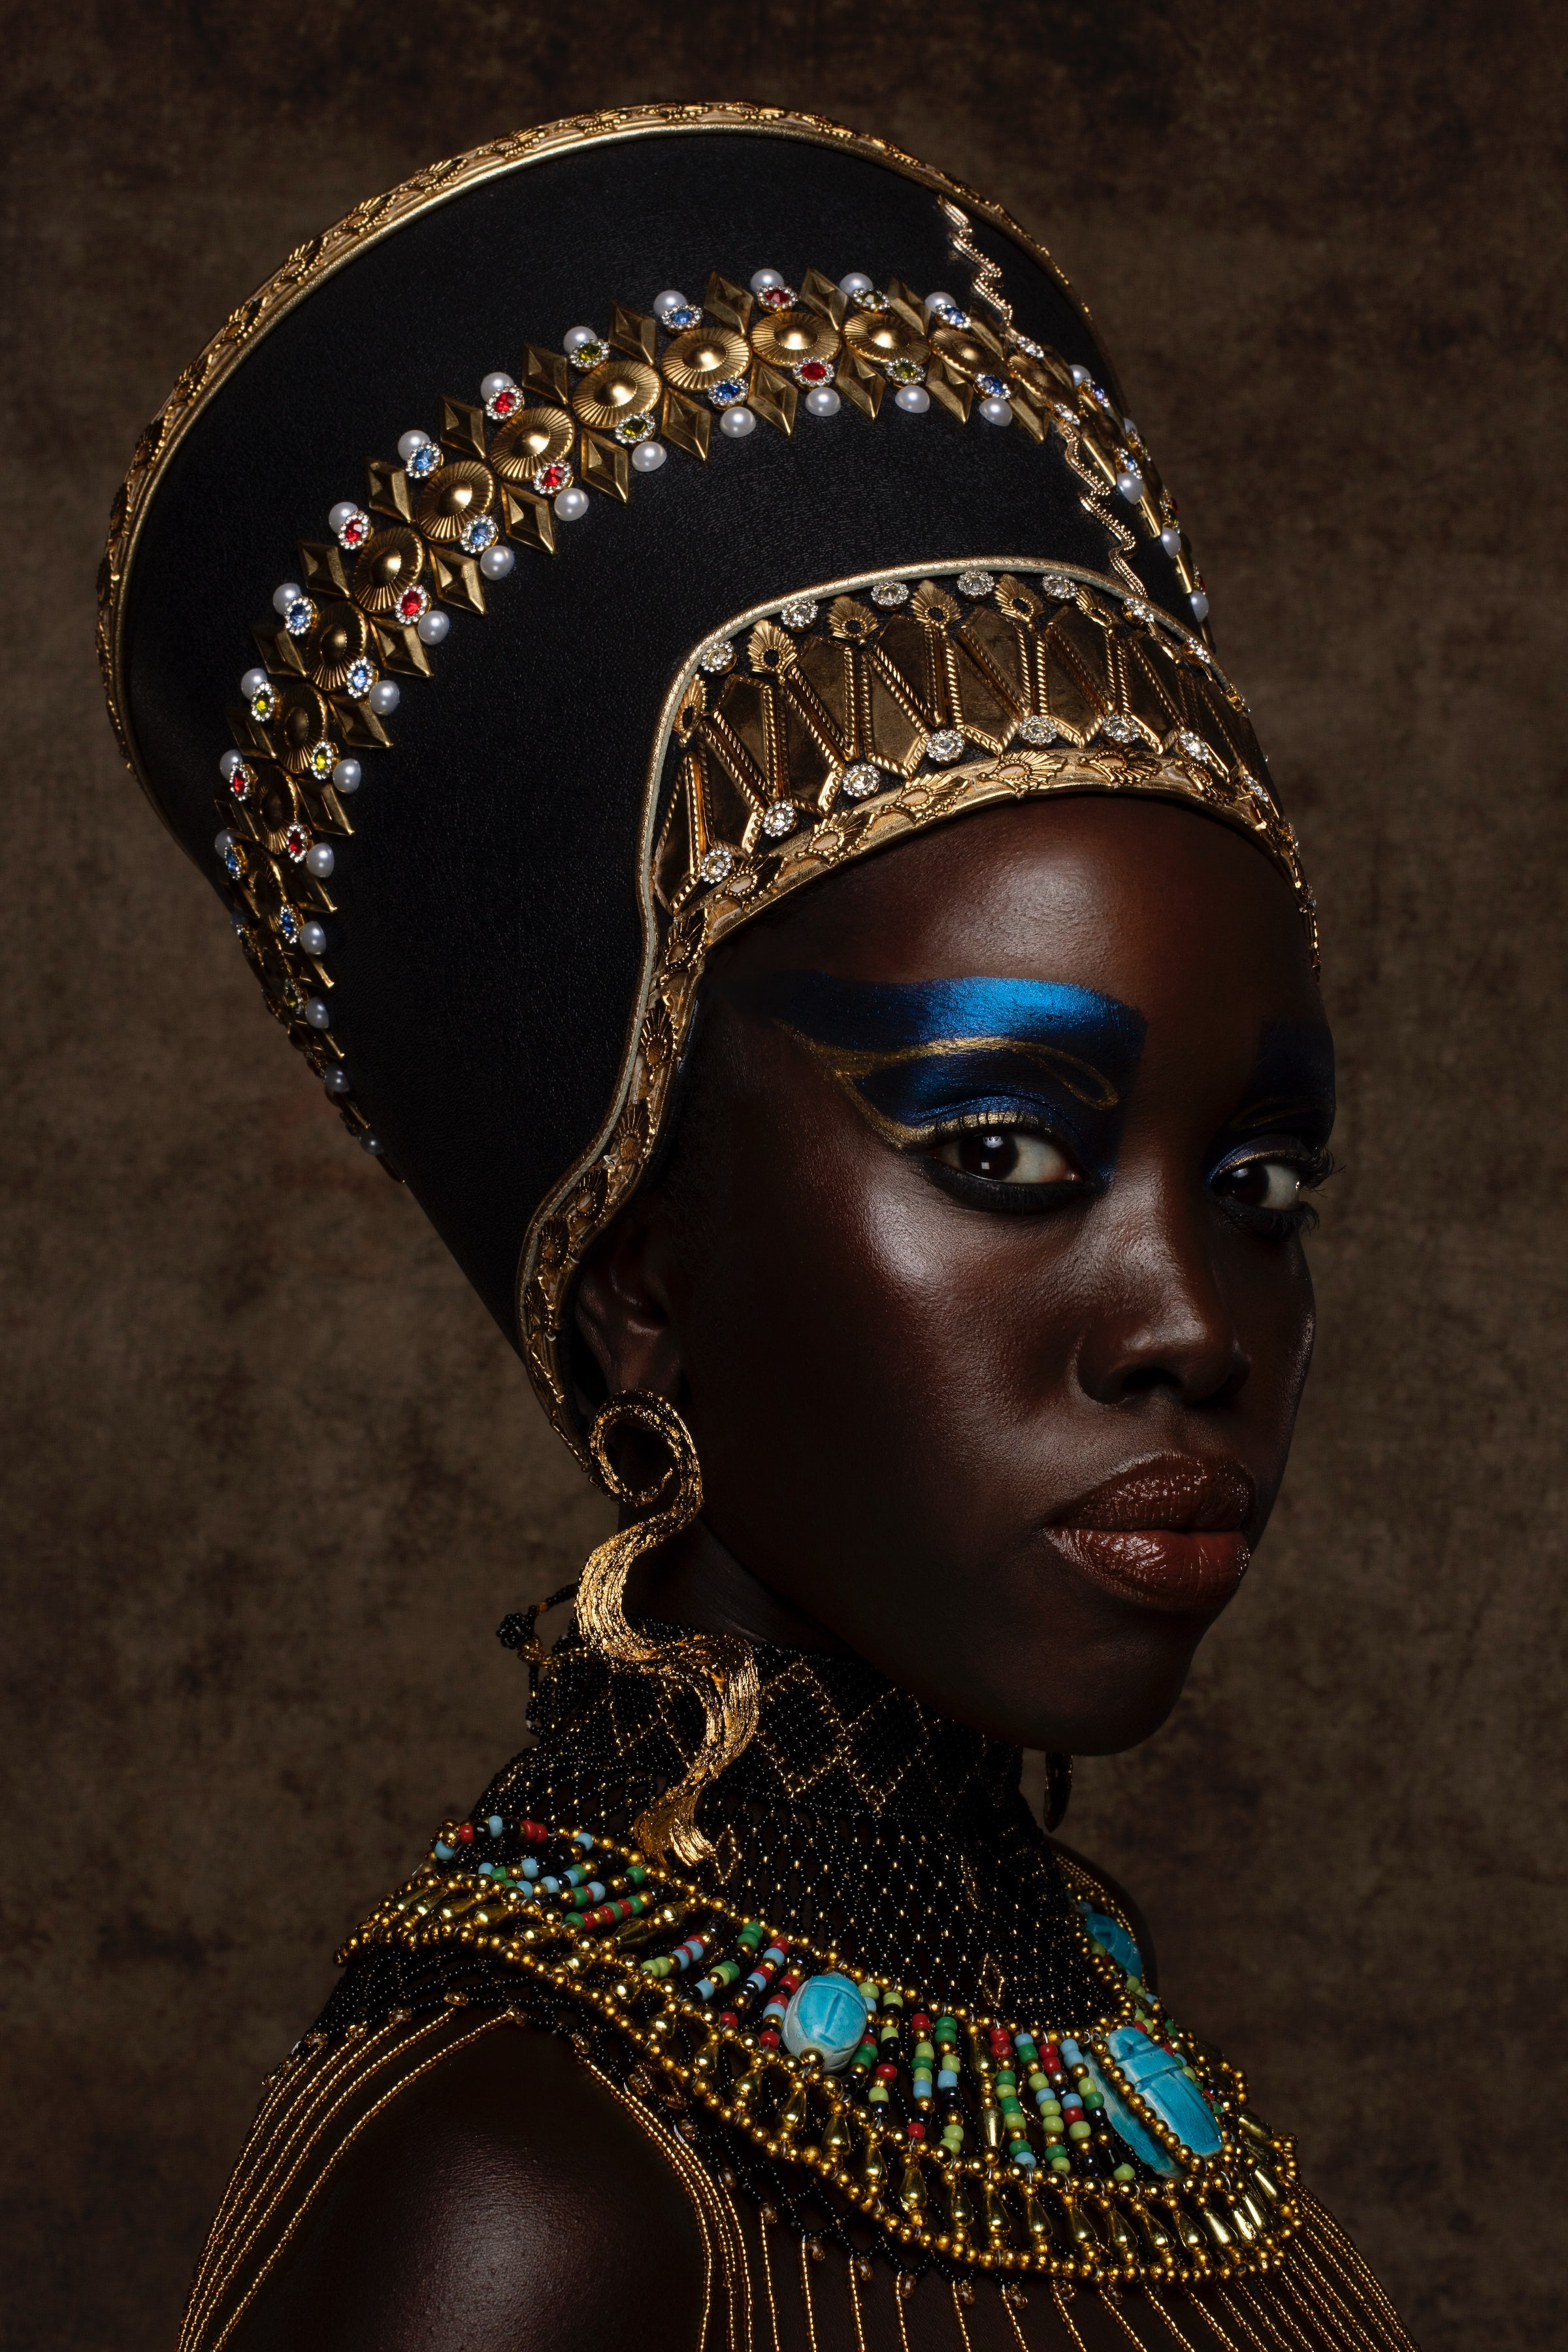 Uoma Beauty put out a collection in honor of the film Coming 2 America that\'s inspired by African queens and is meant to be collectable. Uoma Beauty